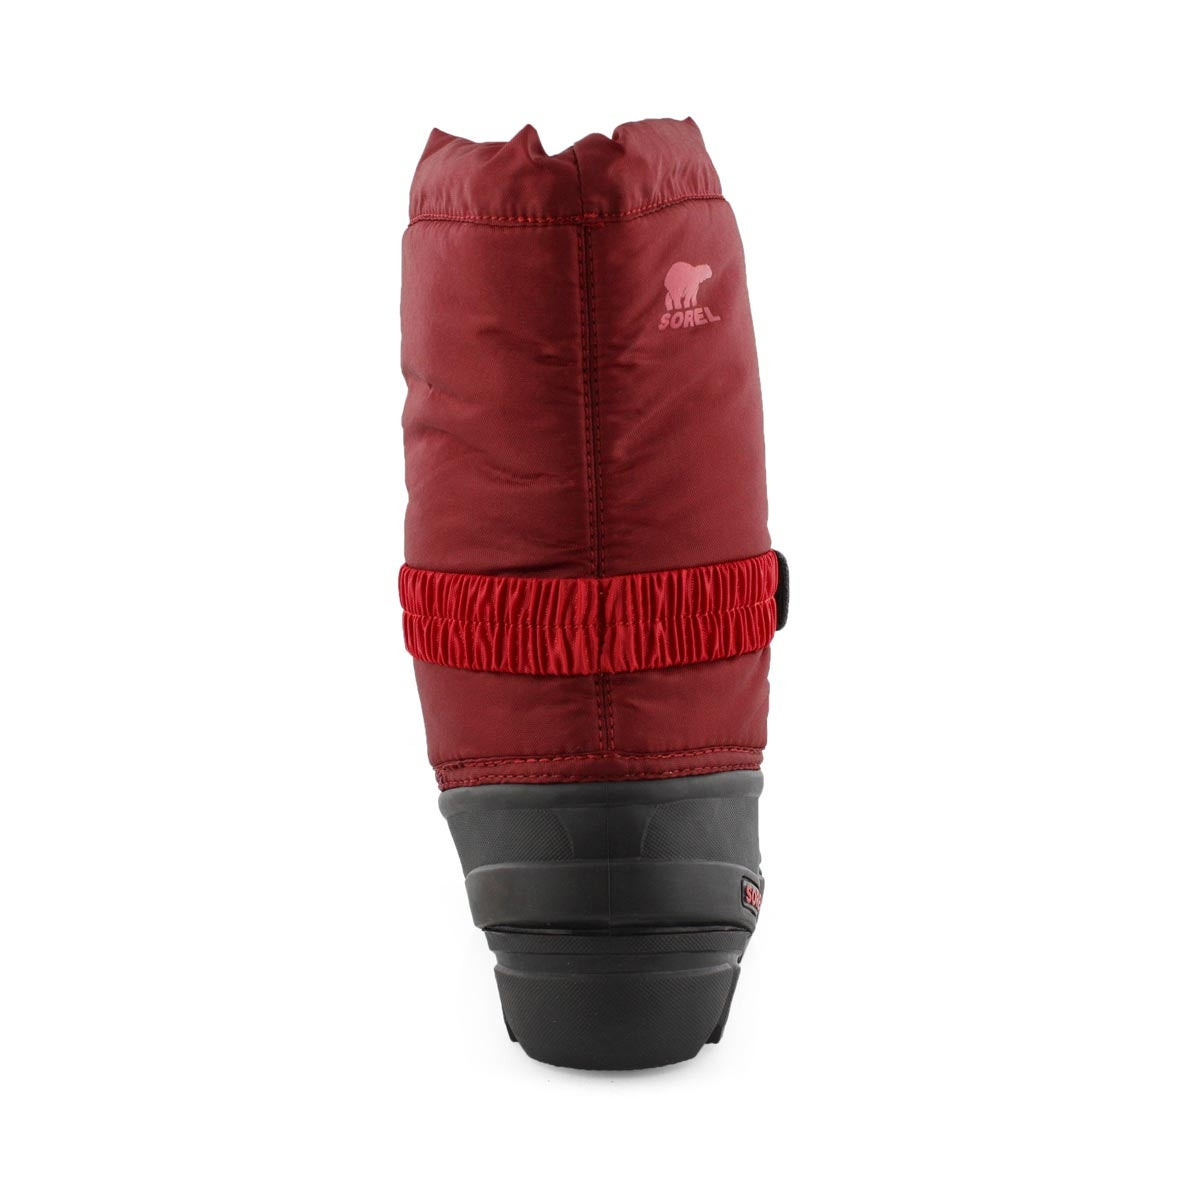 Grls Flurry red pull on winter boot